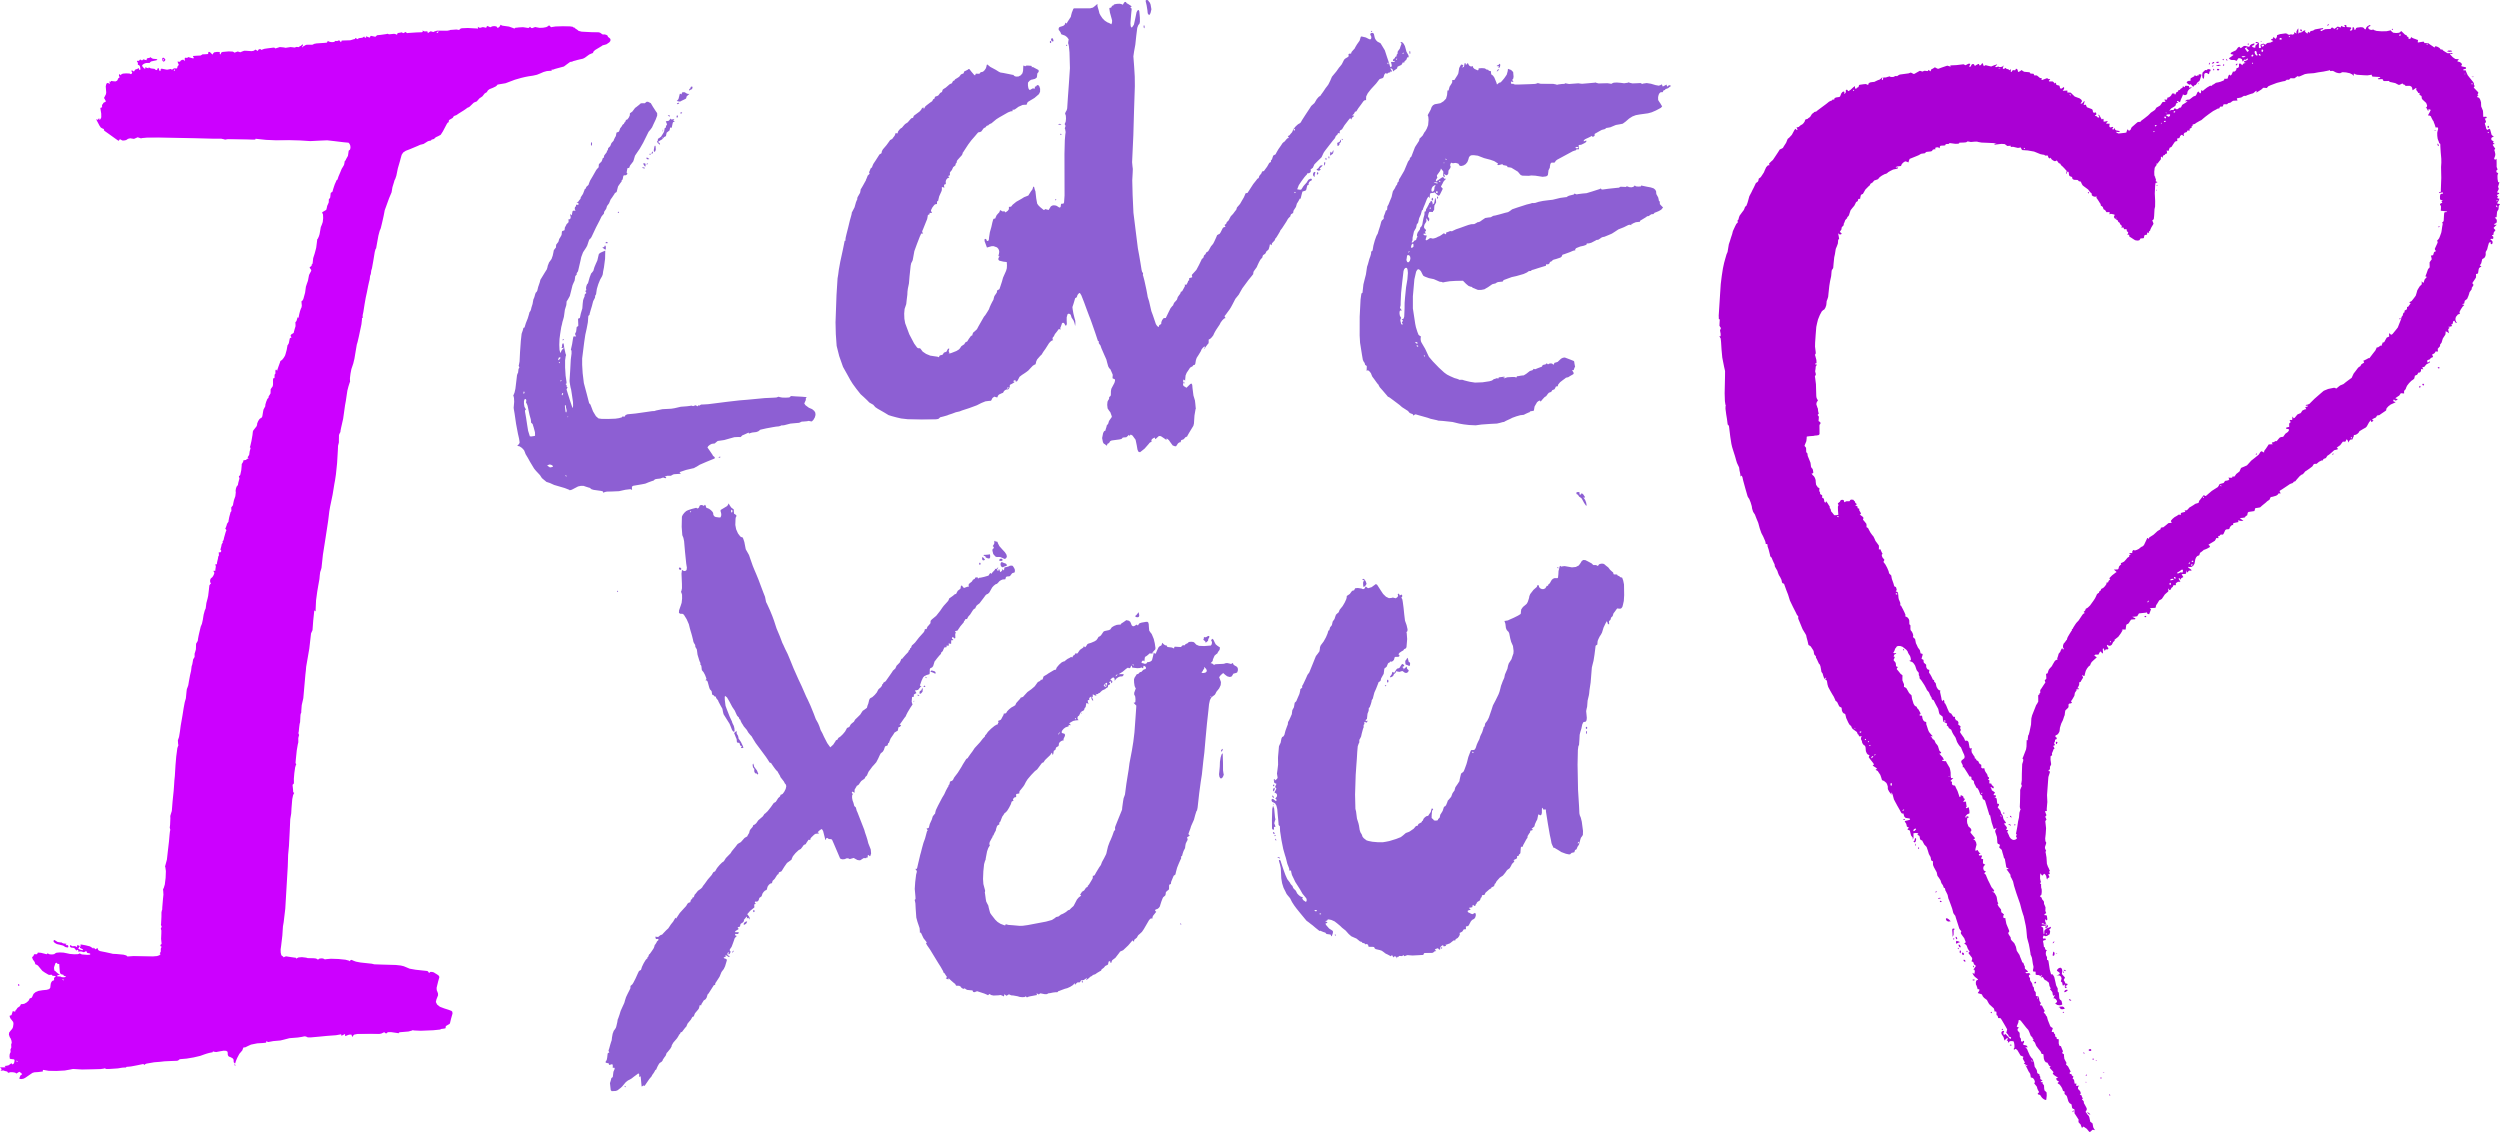 8 i love you texts png transparent onlygfx free download i love you 3g altavistaventures Choice Image